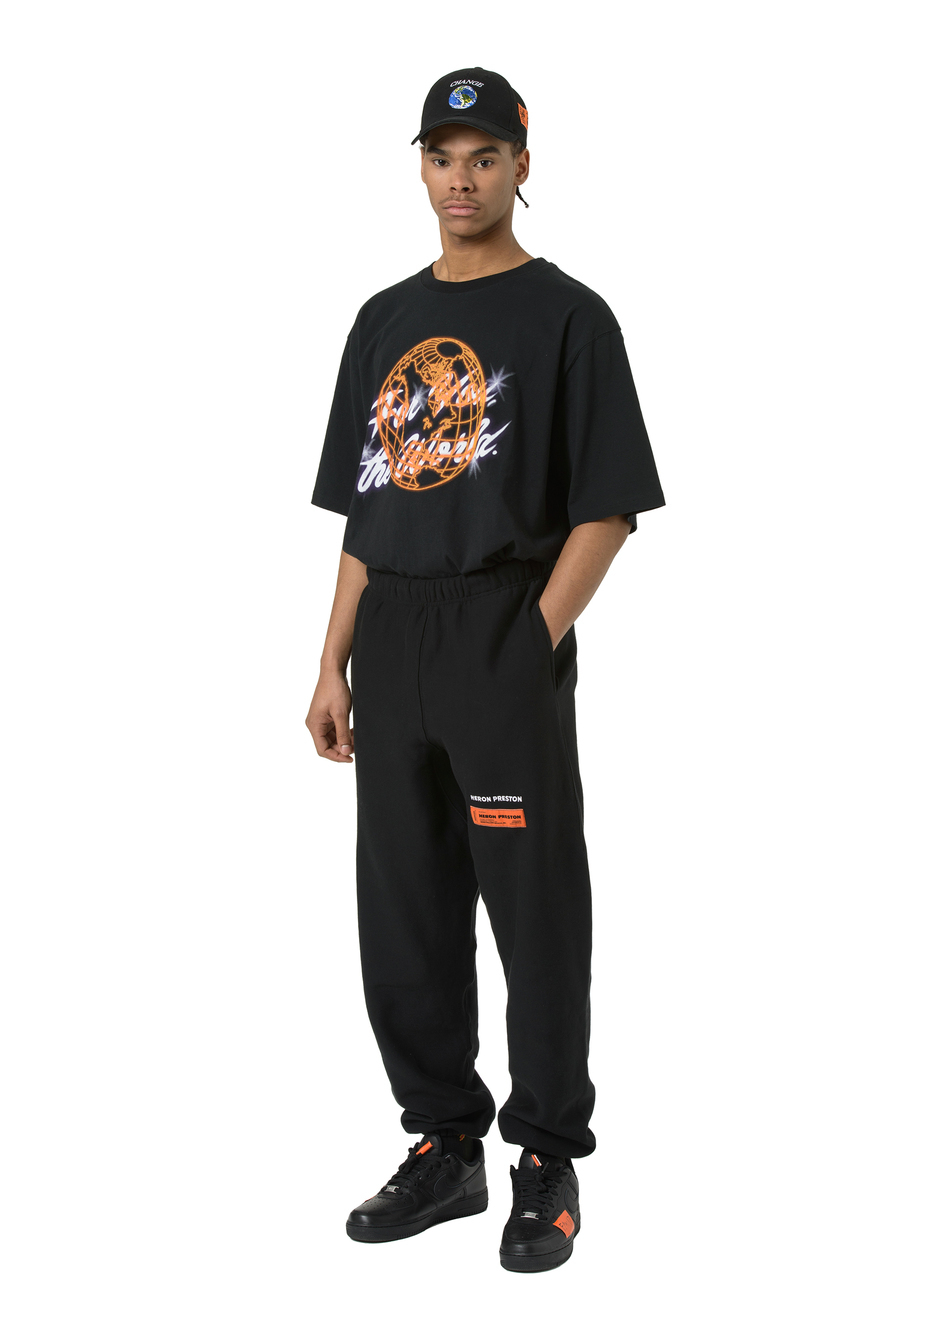 【HERON PRESTON】日本未入荷 For You The World printT